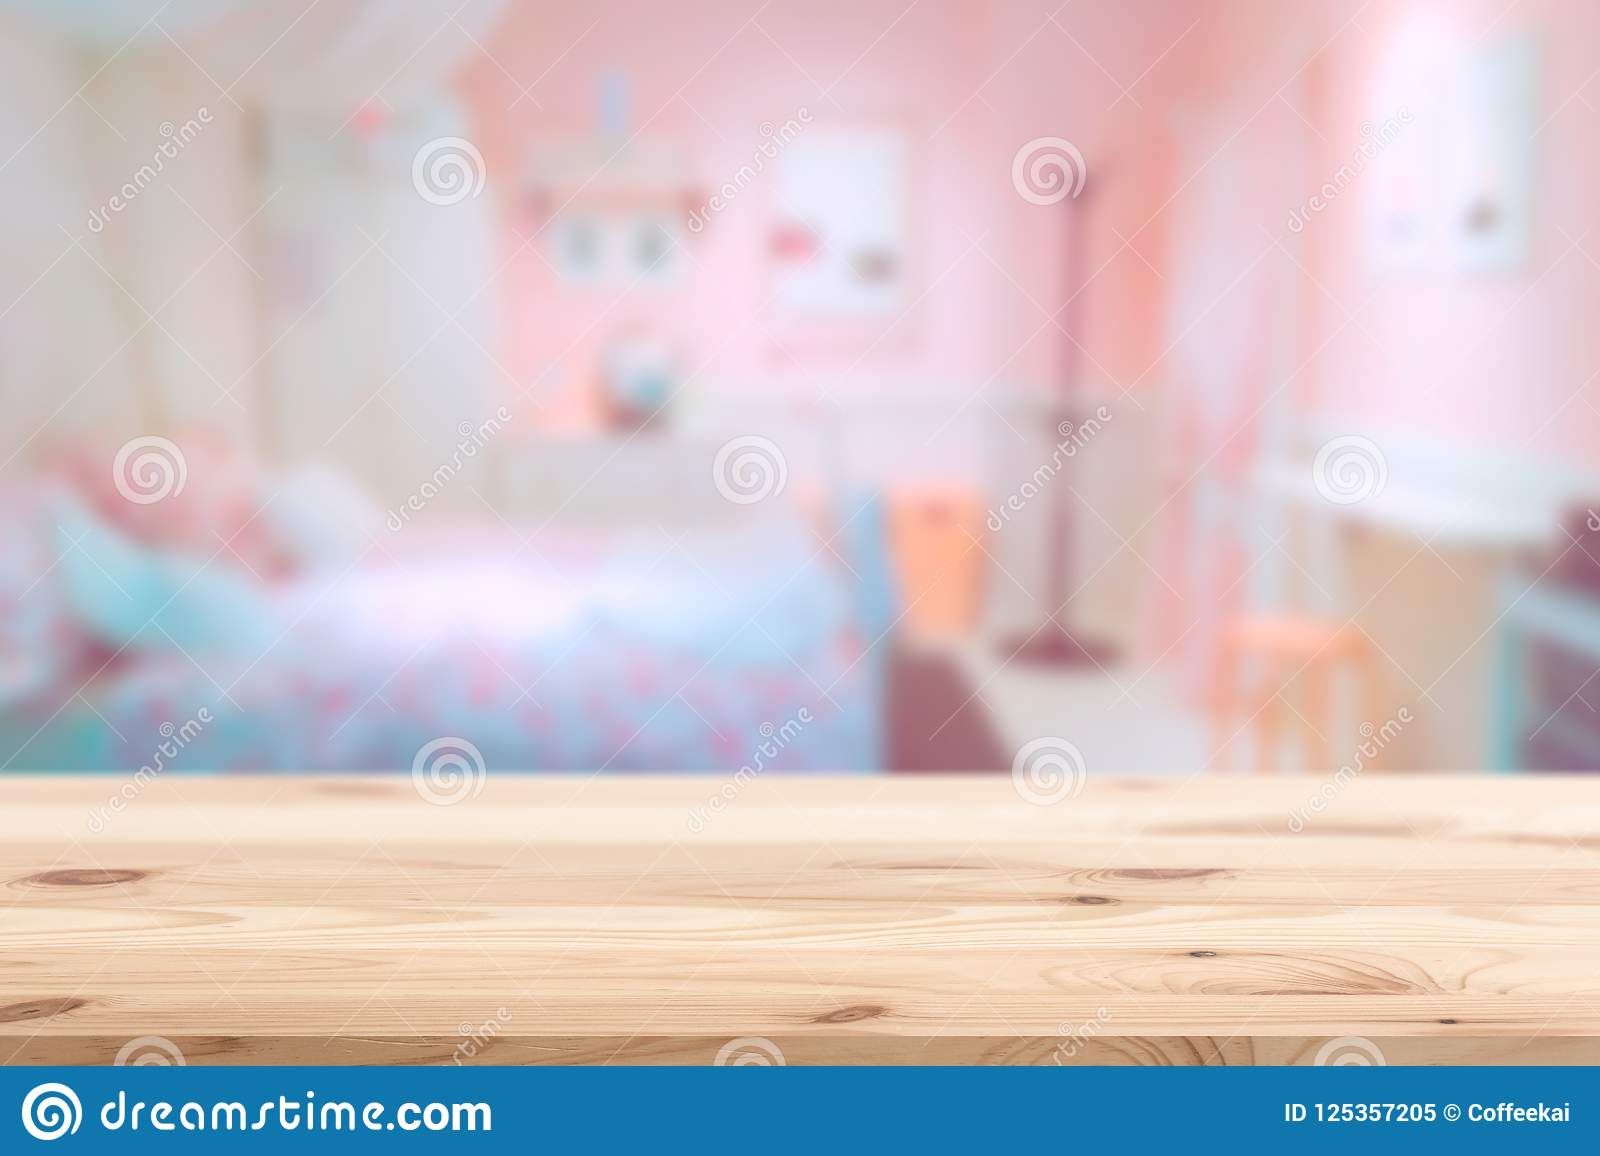 Wood Foreground With Blur Pink Lovely Bedroom Stock Image Image Of Furniture Nature 125357205